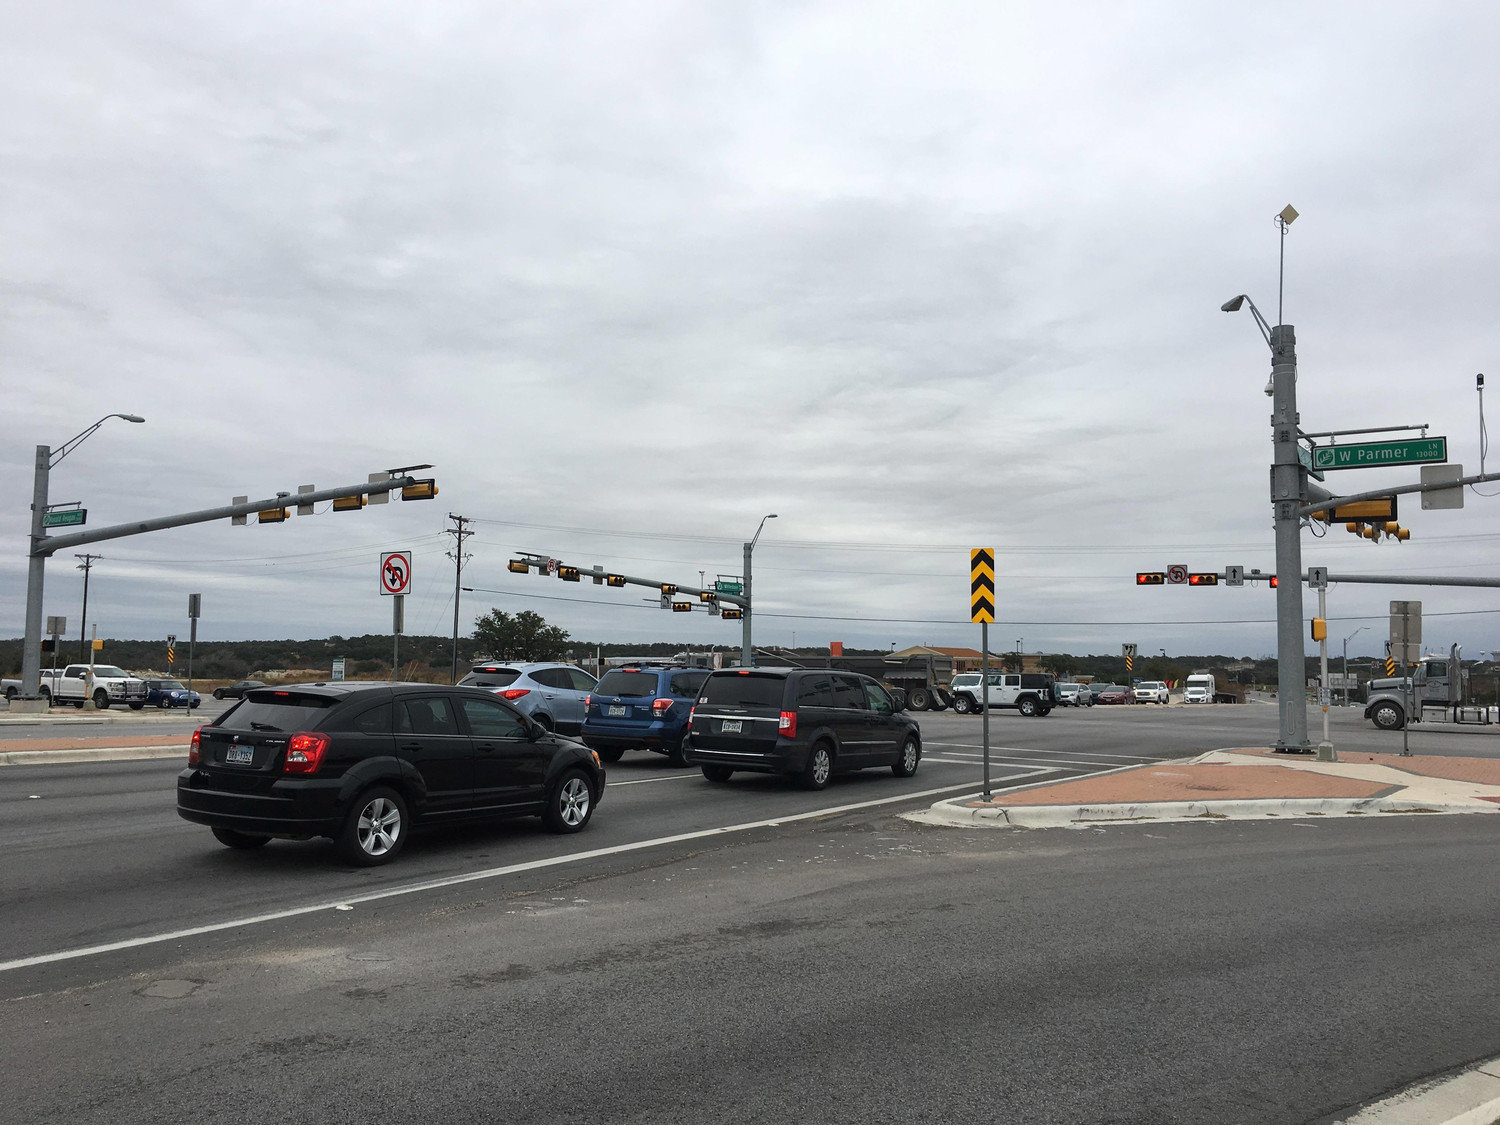 The continuous-flow intersection at RM 1431 and Parmer Lane is one of several major roadway improvements in recent years, as traffic is expected to double by 2035, according to TxDOT.